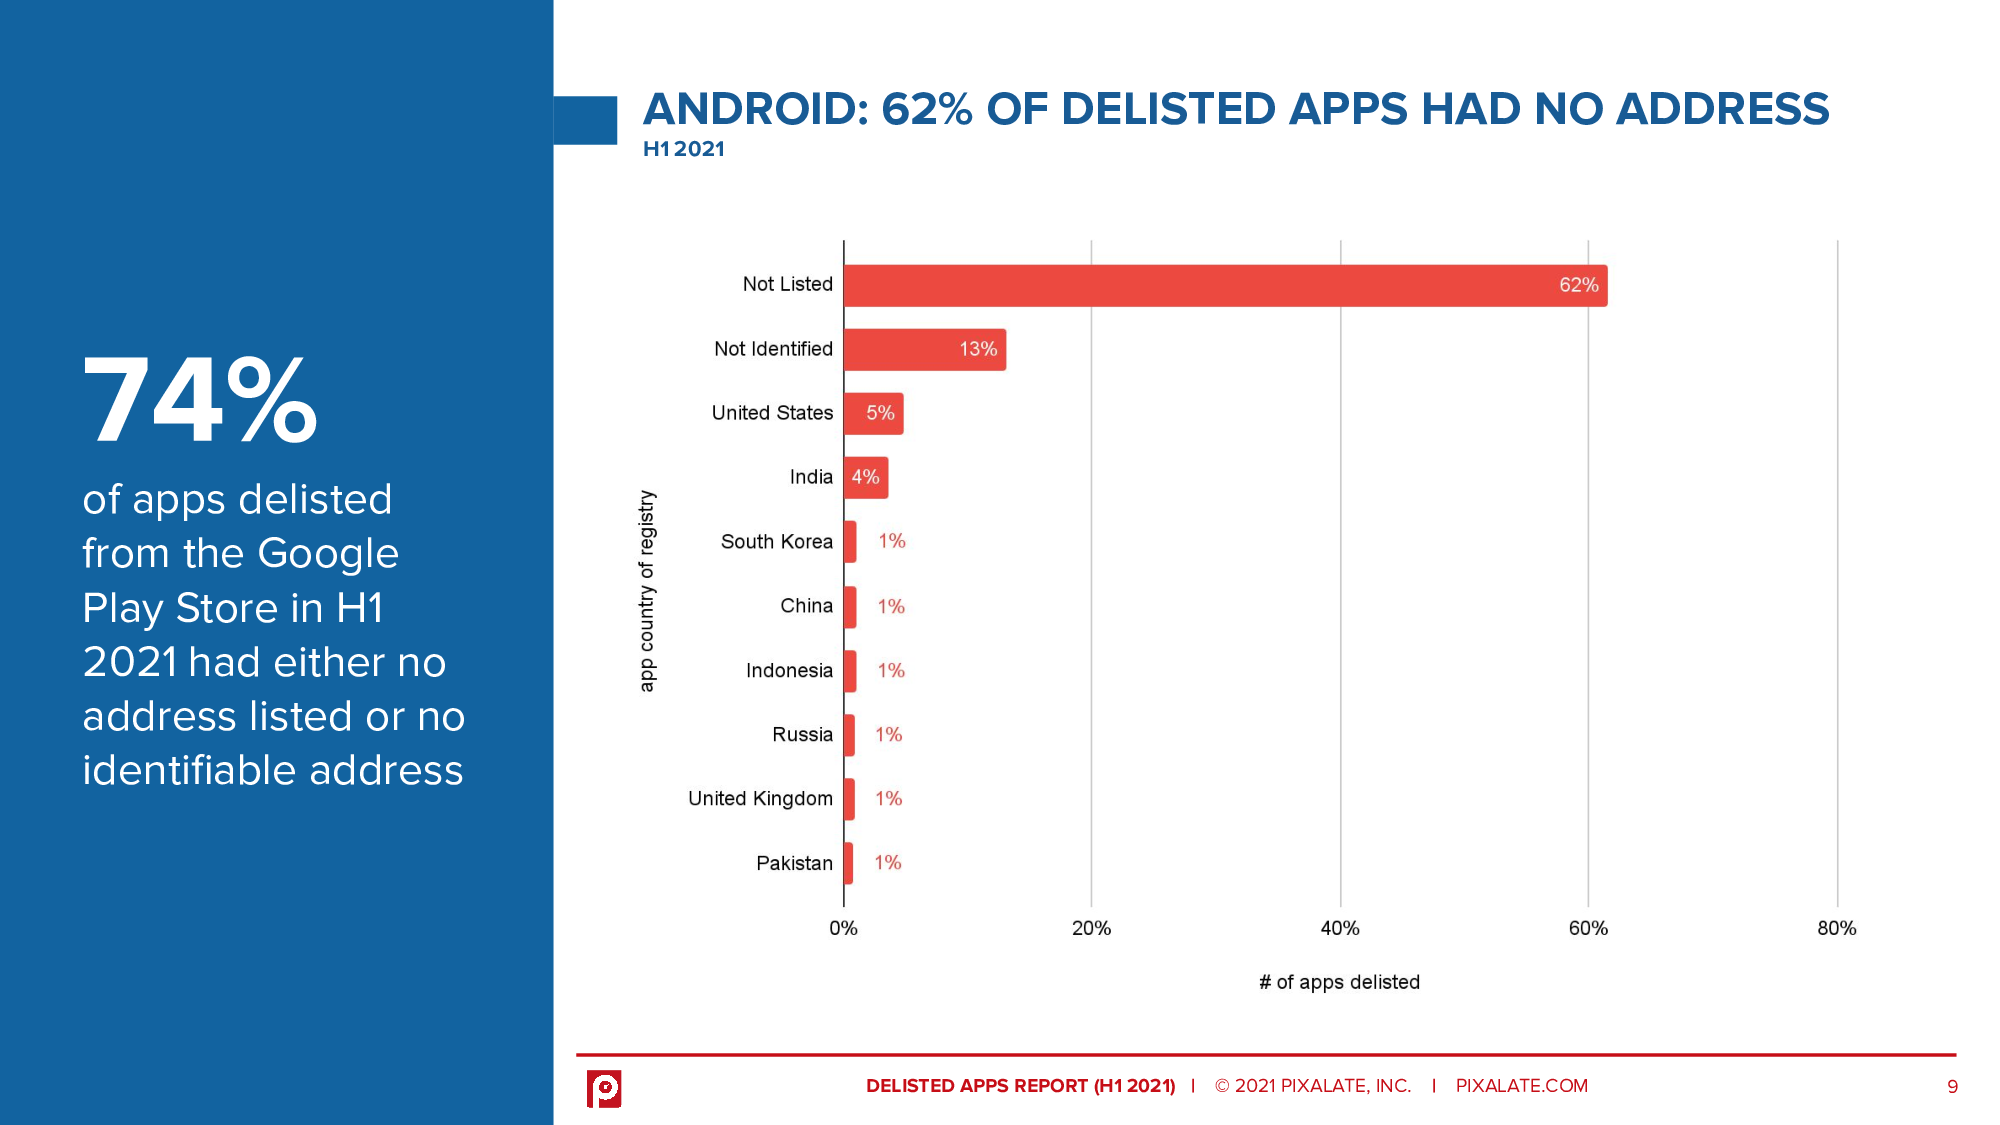 74% of apps delisted from the Google Play Store in H1 2021 had either no address listed or no identifiable address